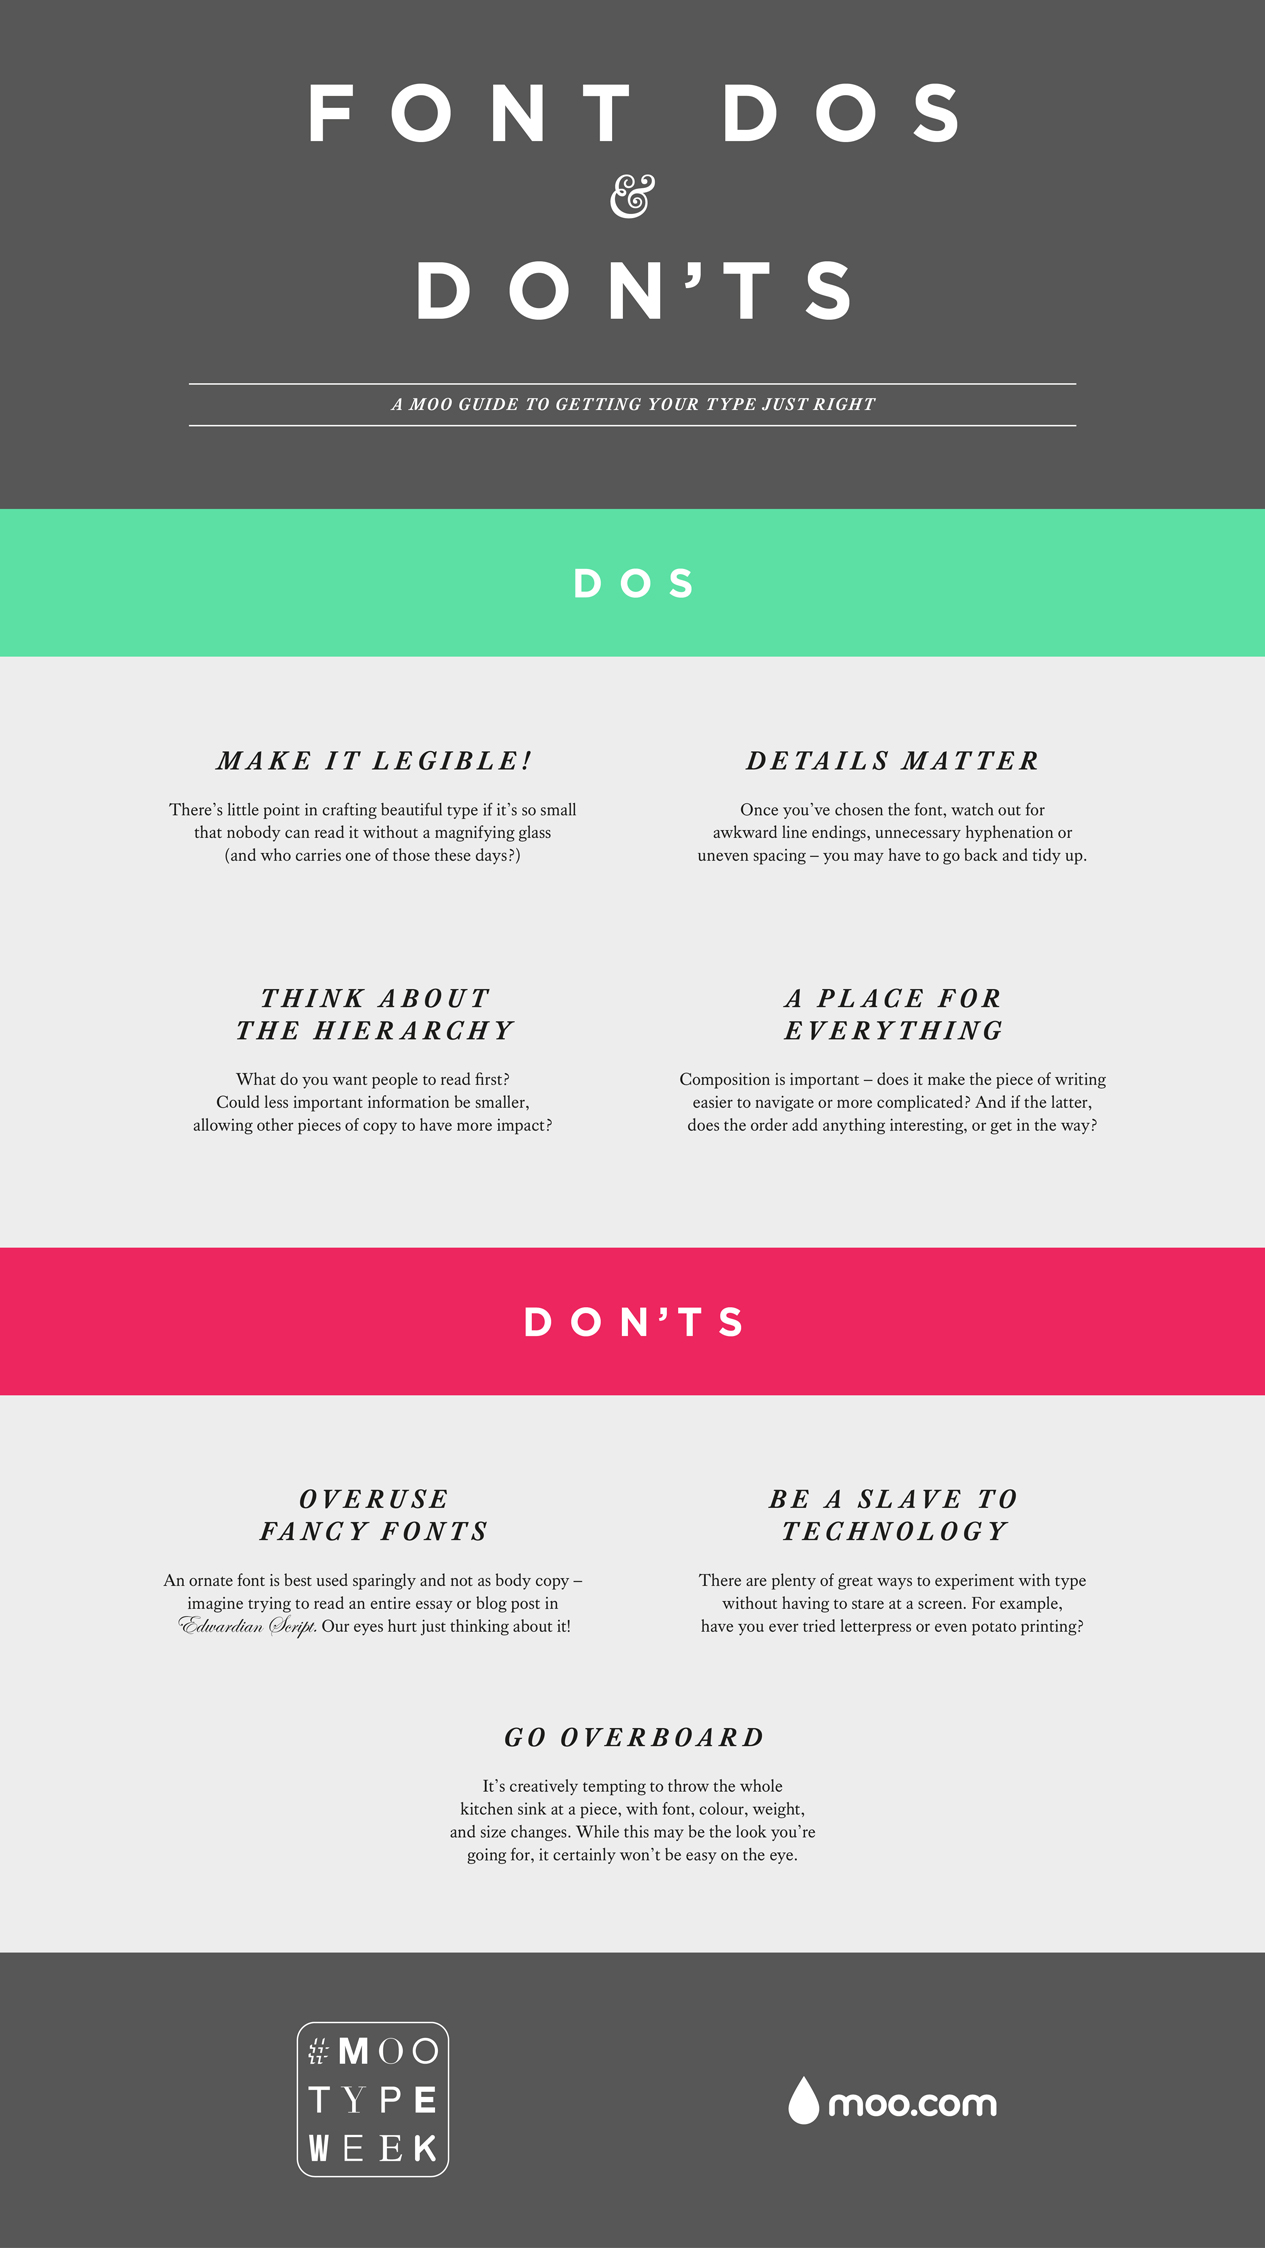 business cards dos don ts by moo posabilities font dos don ts